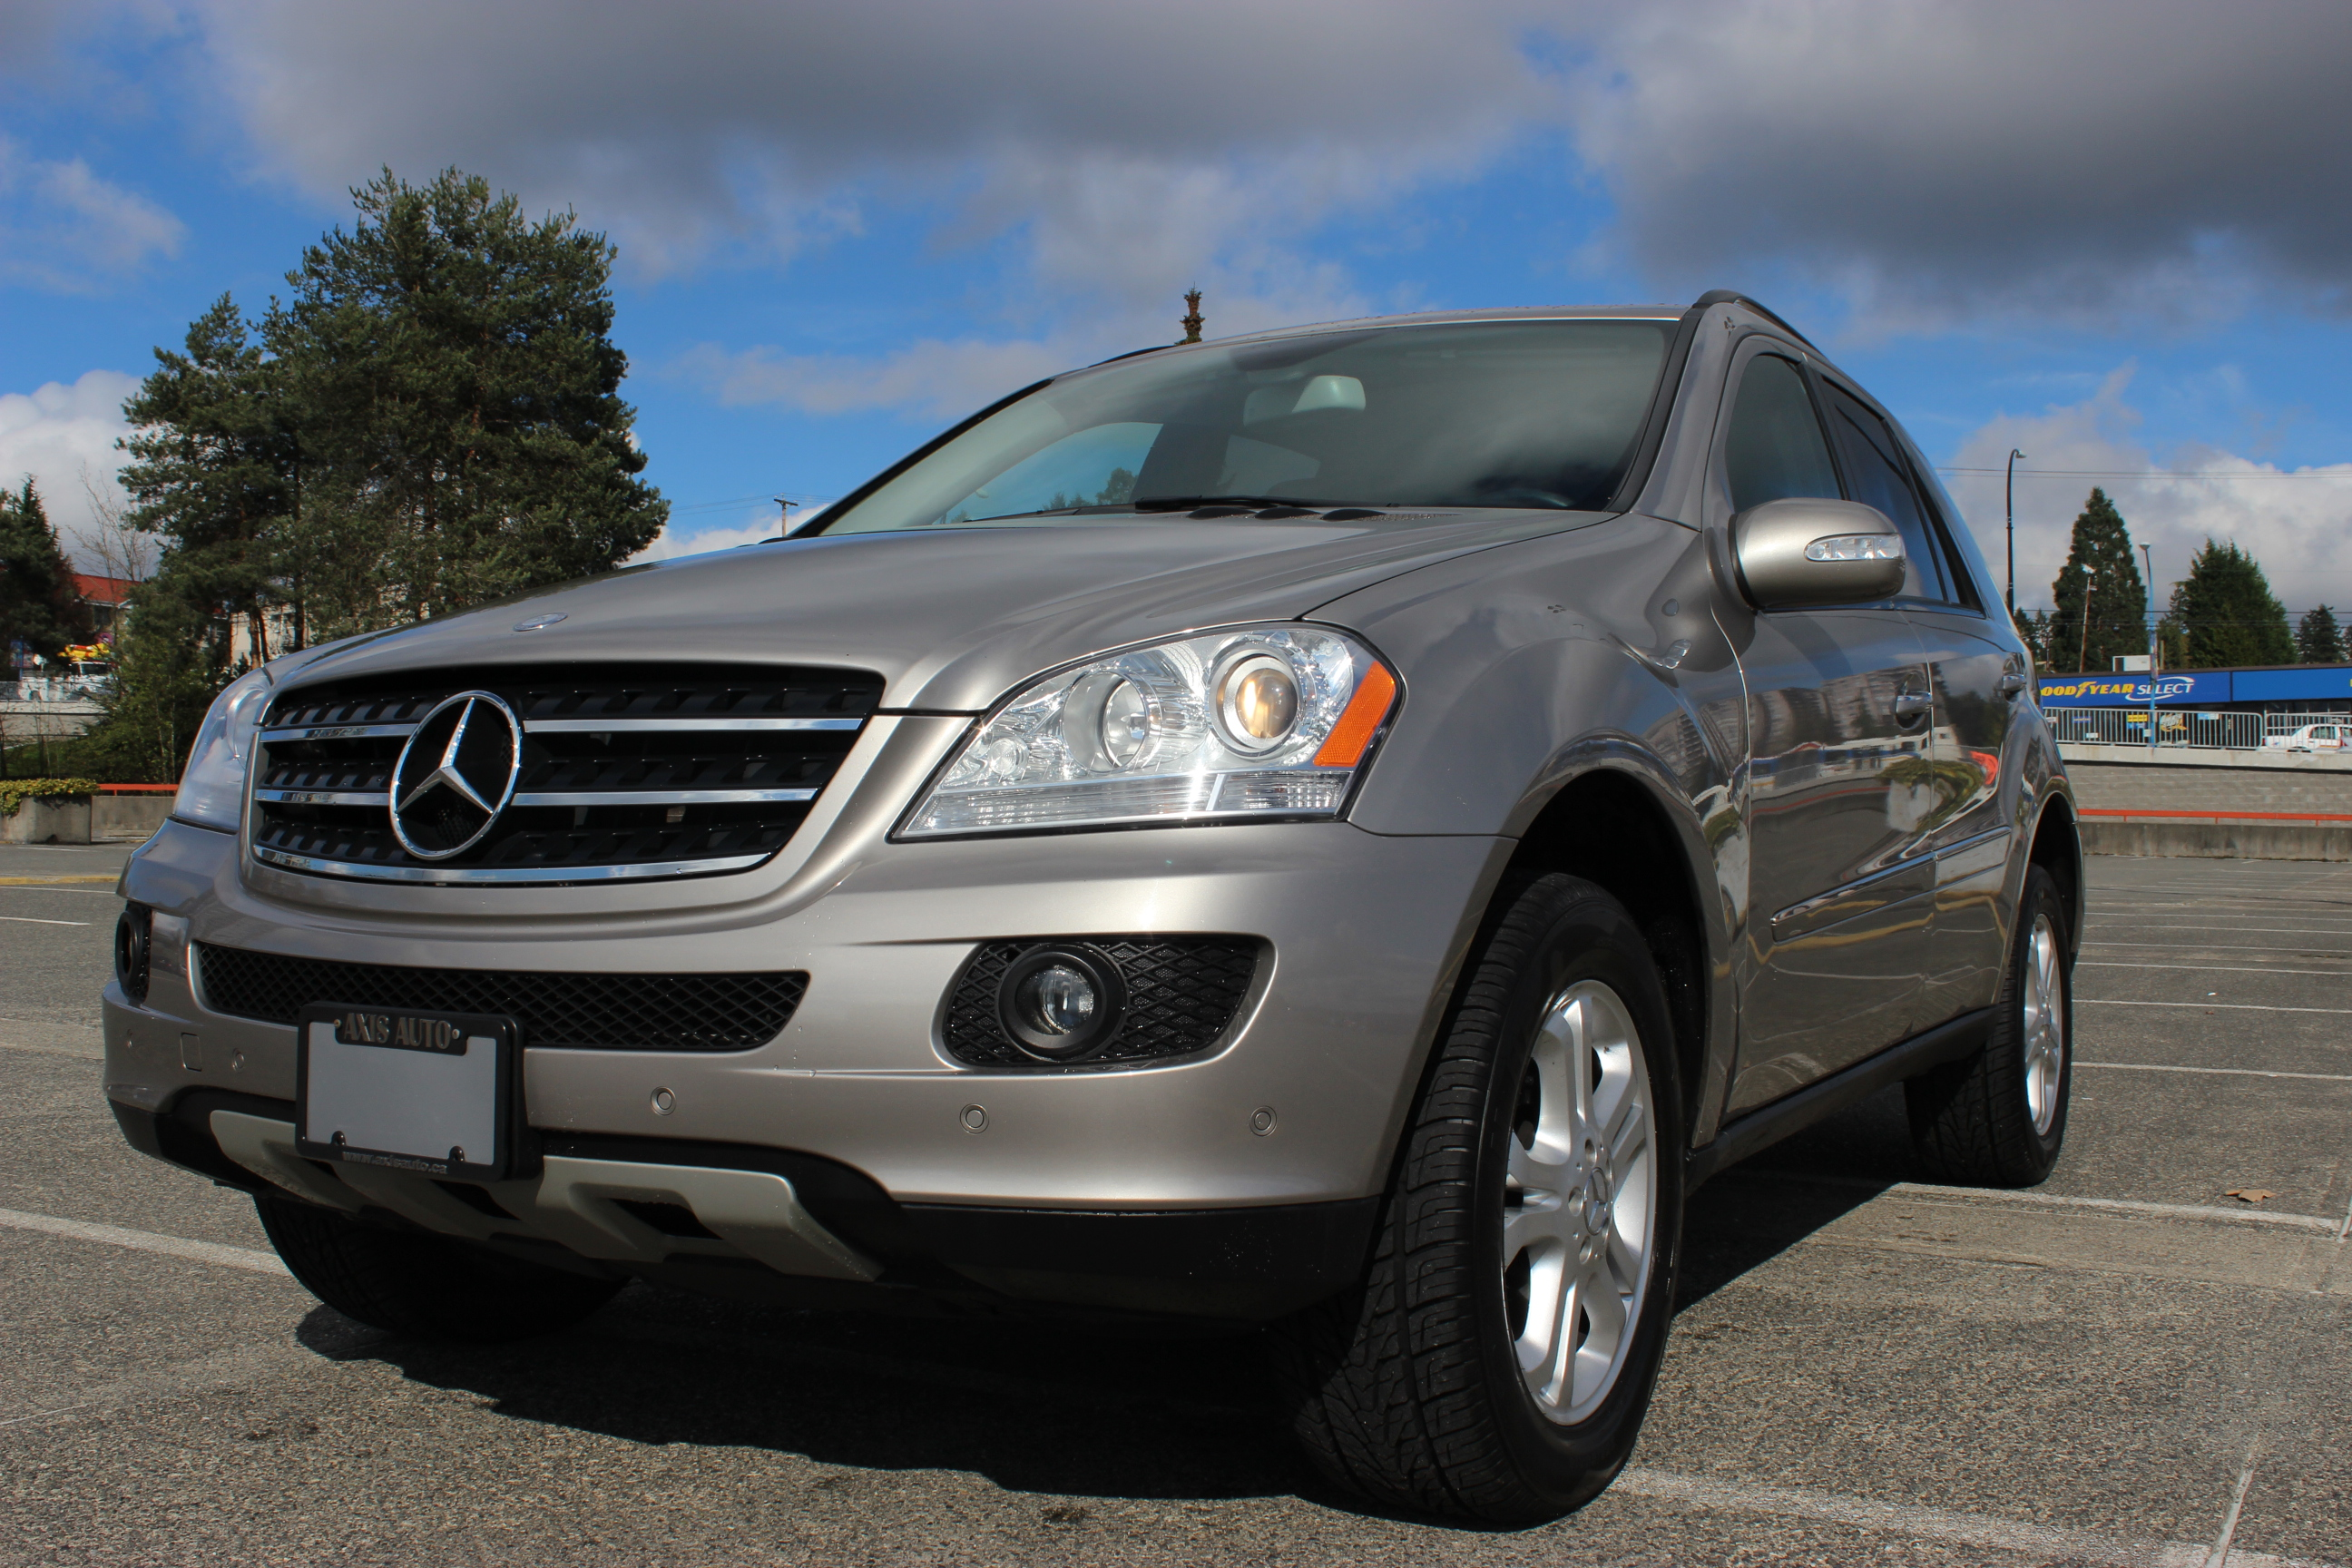 2007 mercedes benz ml350 4matic axis auto. Black Bedroom Furniture Sets. Home Design Ideas